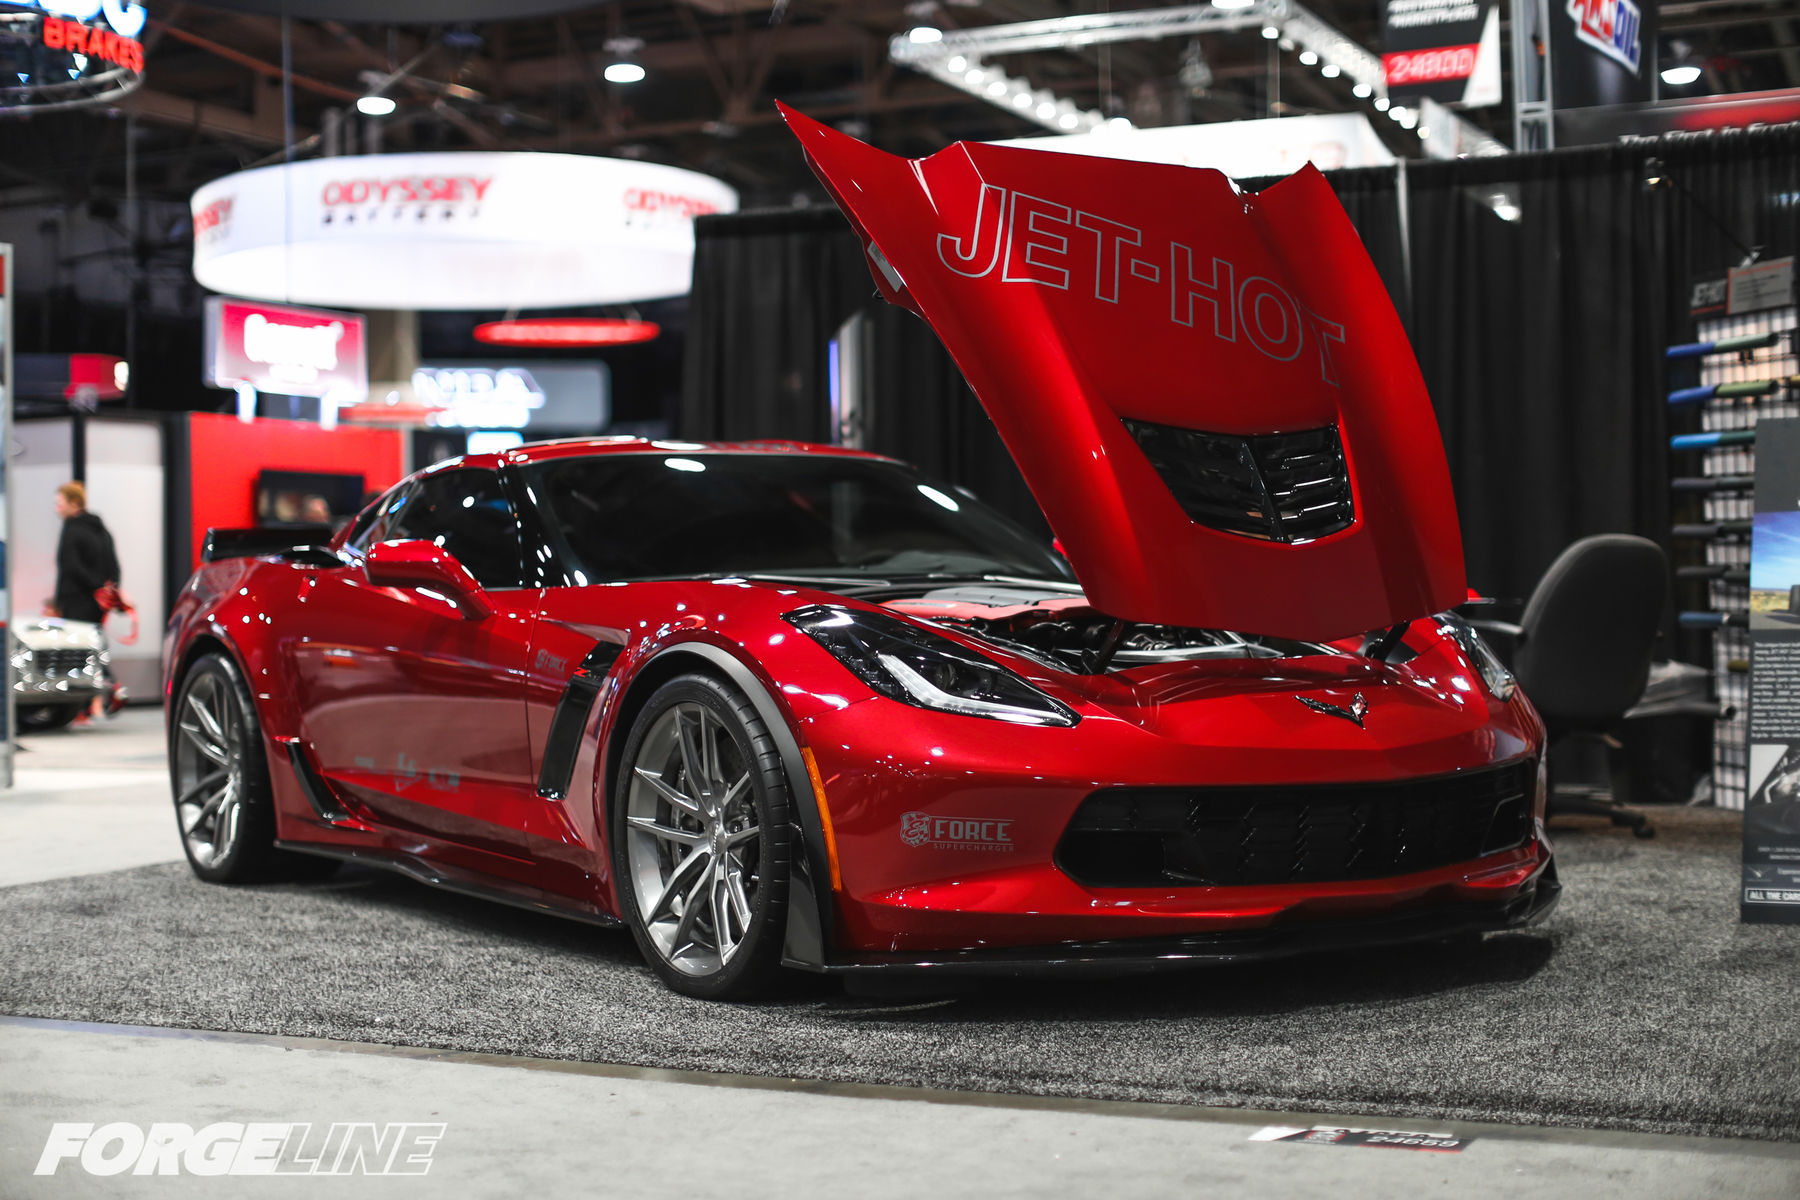 2015 Chevrolet Corvette | Total Lubricants C7 Corvette Z06 on Forgeline One Piece Forged Monoblock AR1 Wheels